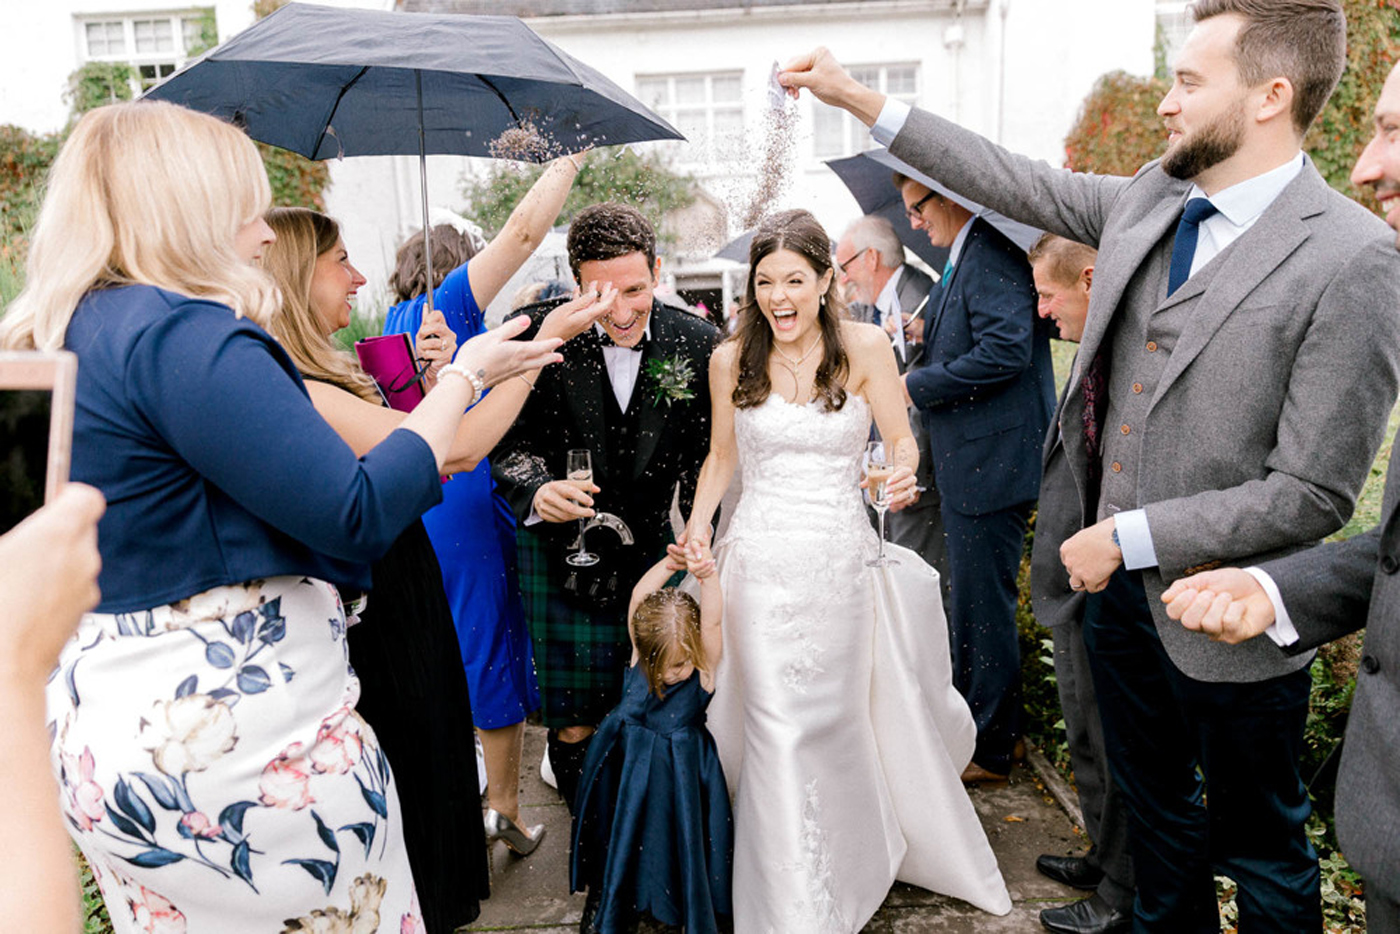 Real Wedding Stories | A Scottish Wedding in the Great Outdoors - The Foil Invite Company